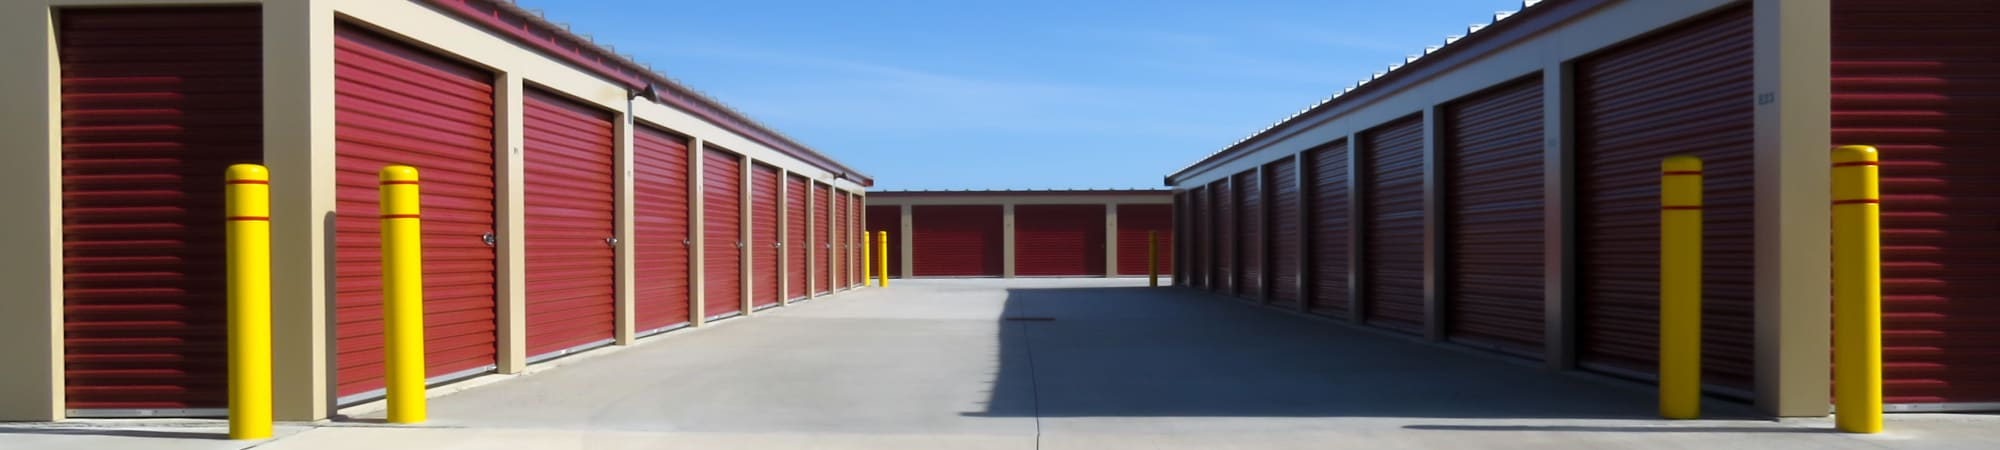 Features at Handy Storage in Pembroke Pines, Florida